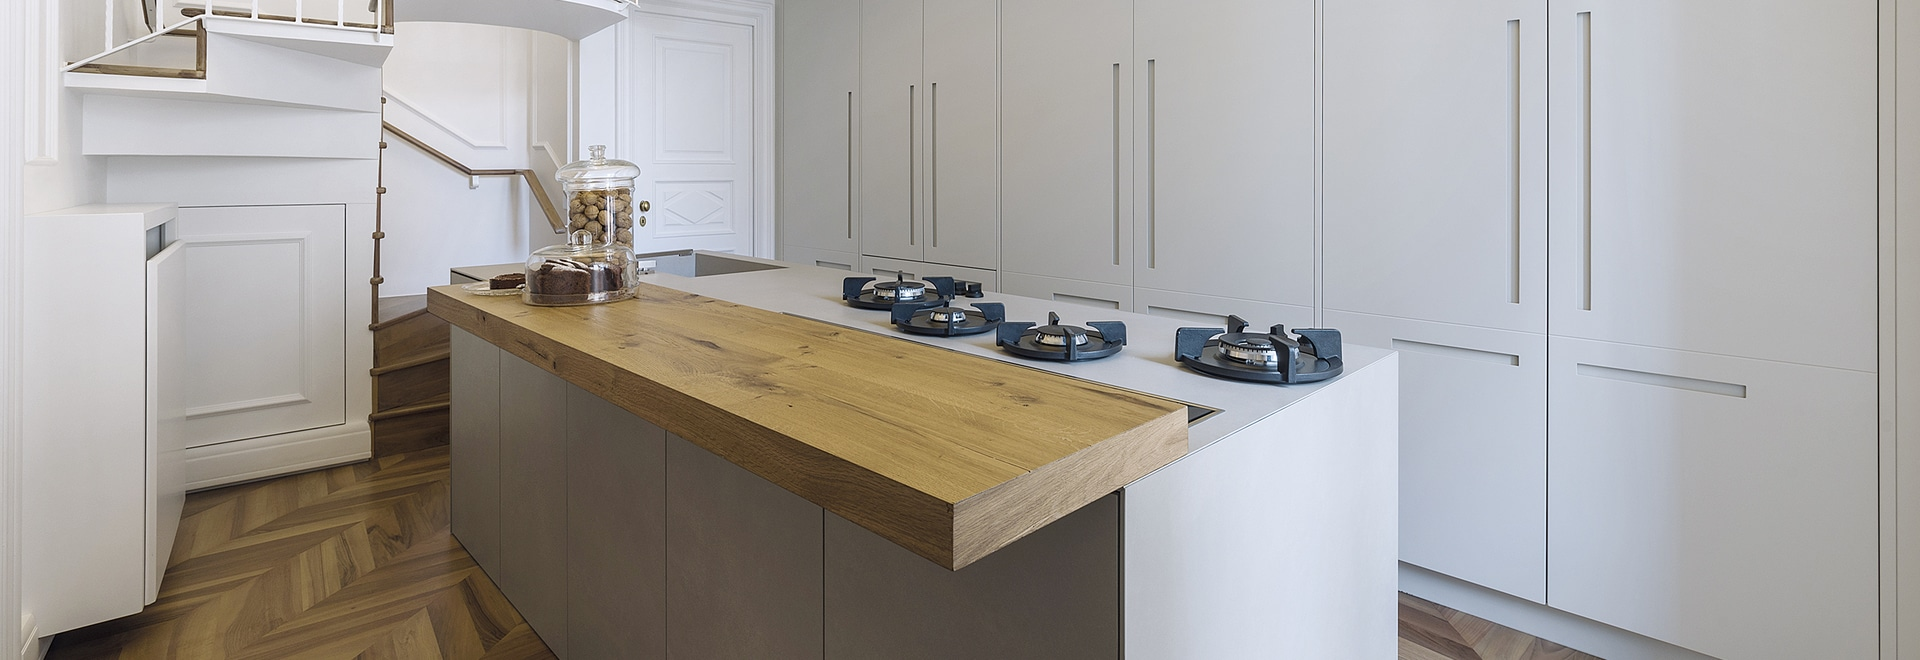 Kitchen project with island with Gres finish - Via del Fornaio ...